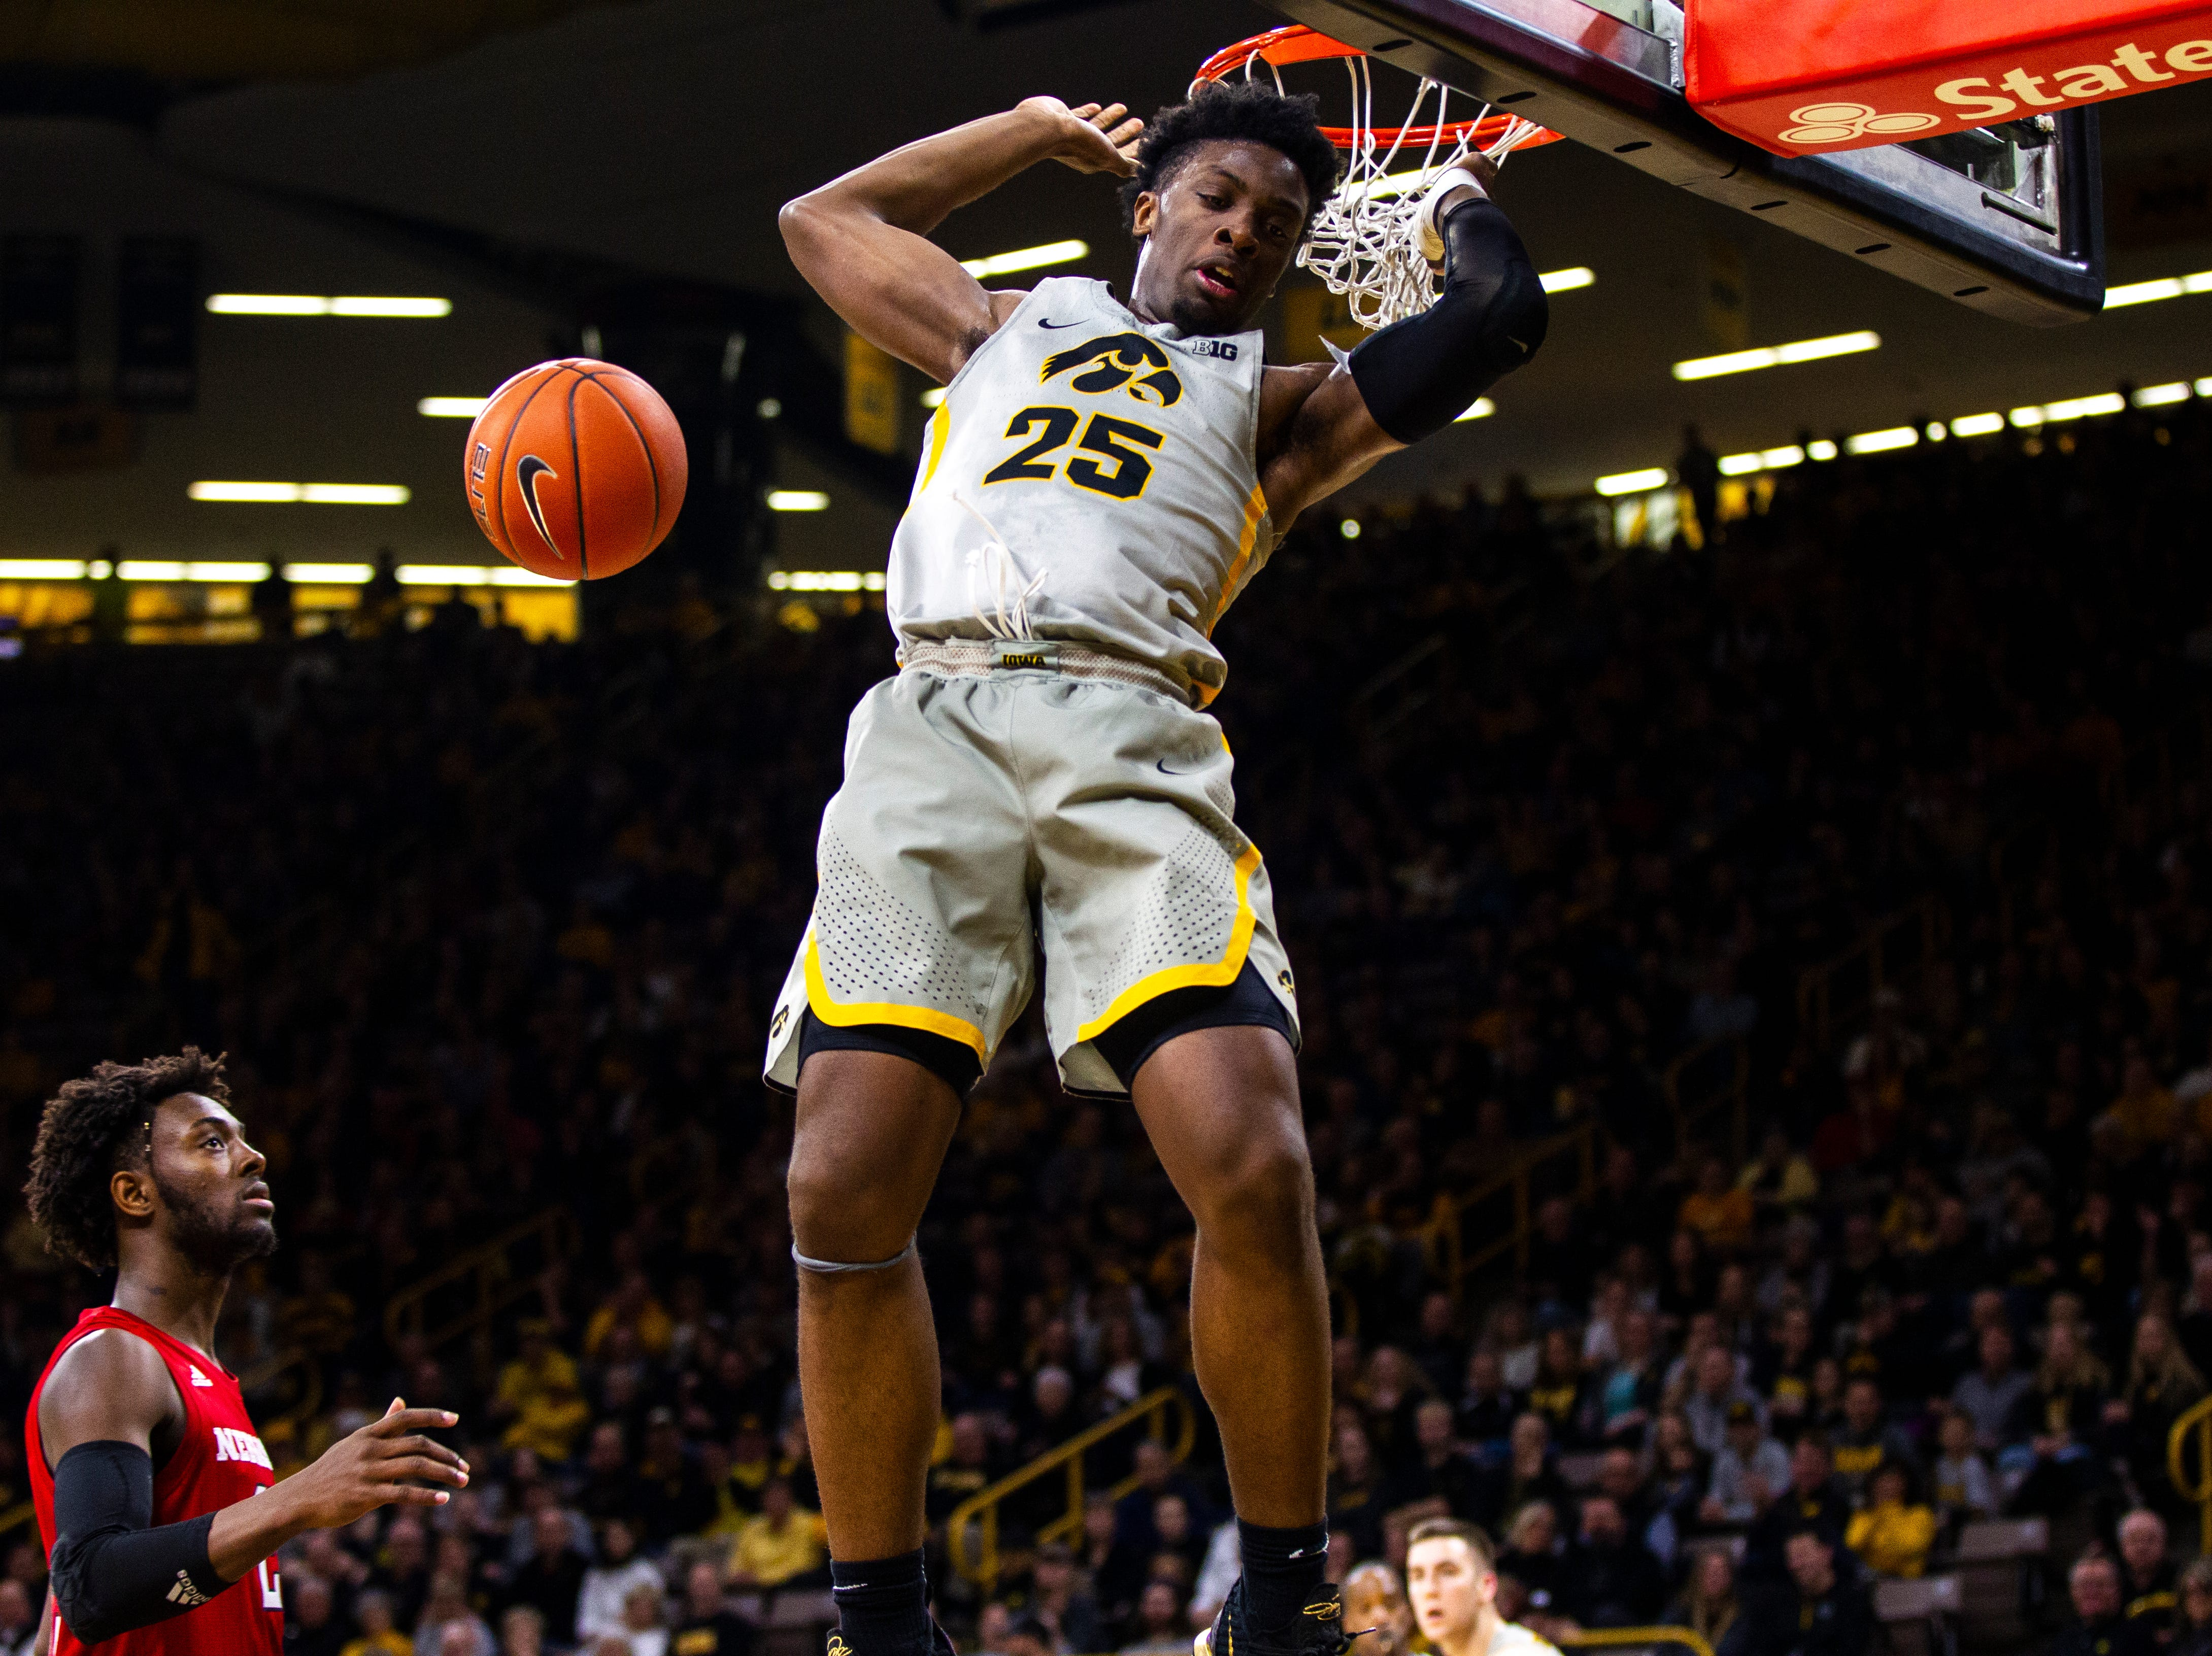 Iowa forward Tyler Cook (25) comes off the rim after a dunk during a NCAA Big Ten Conference men's basketball game on Sunday, Jan. 6, 2019, at the Carver-Hawkeye Arena in Iowa City, Iowa.